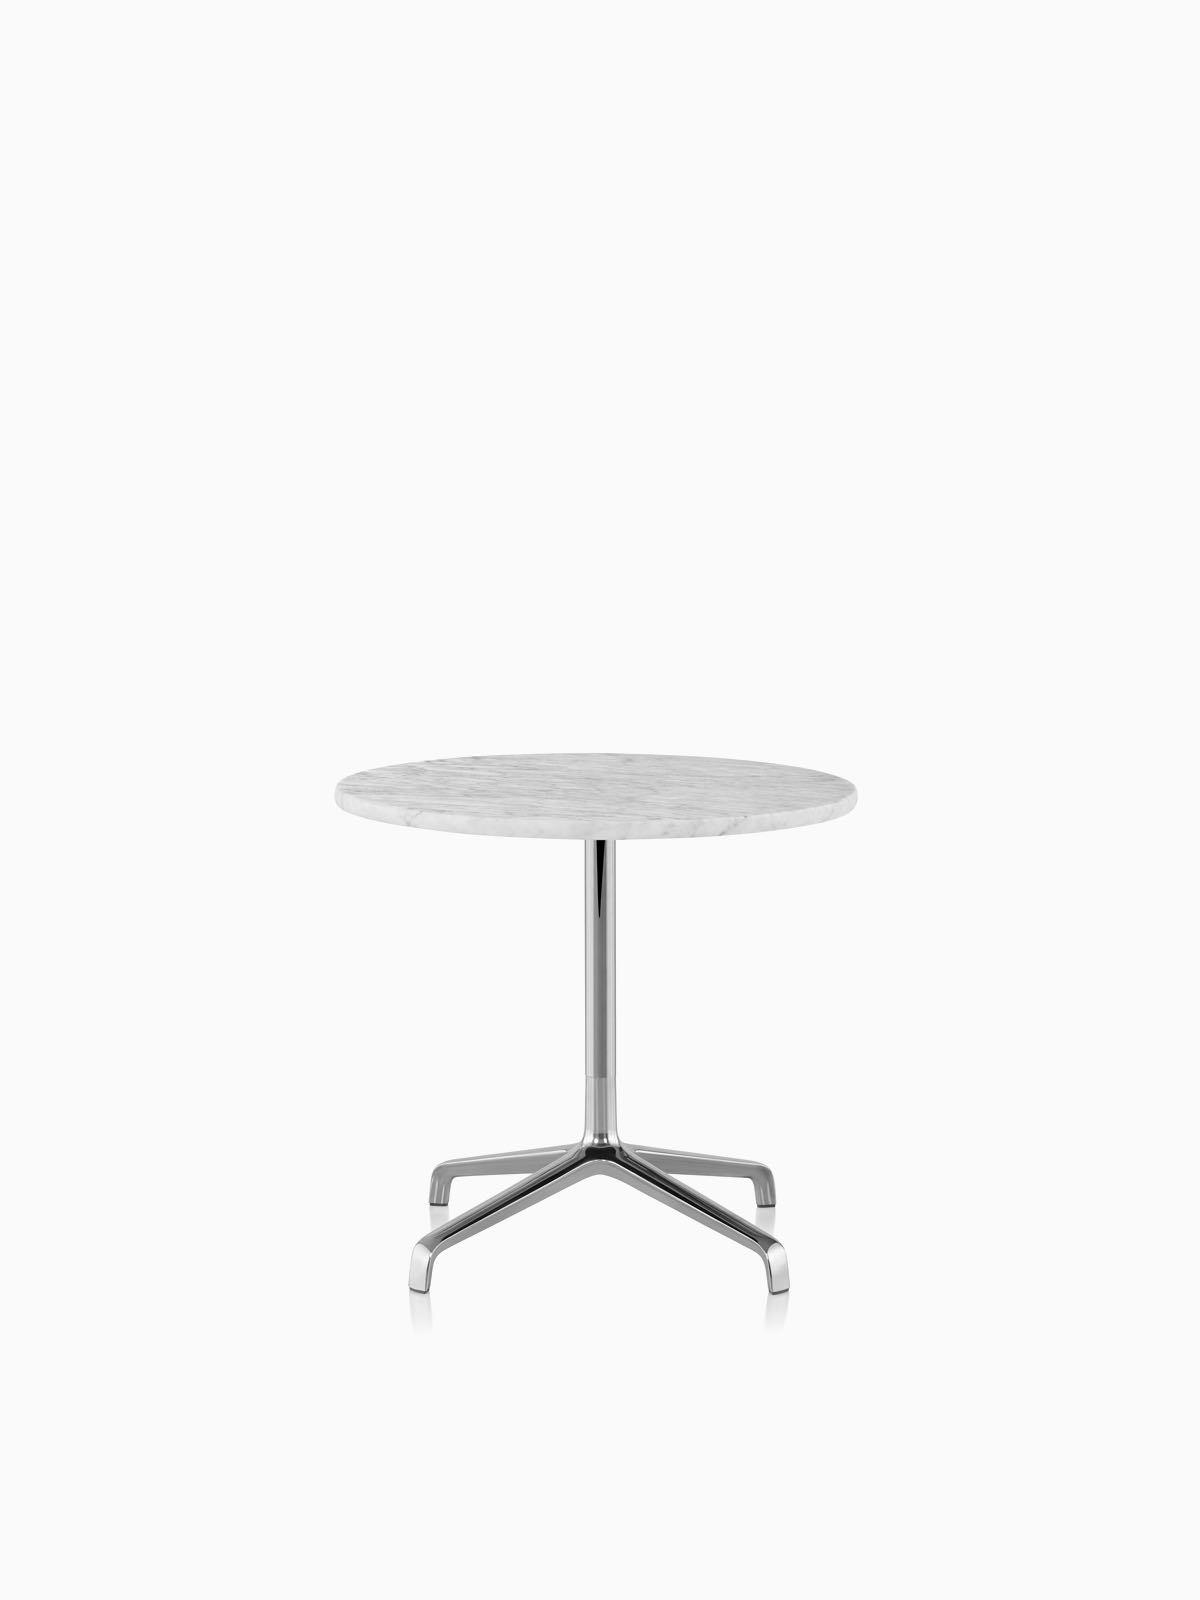 Striad Tables